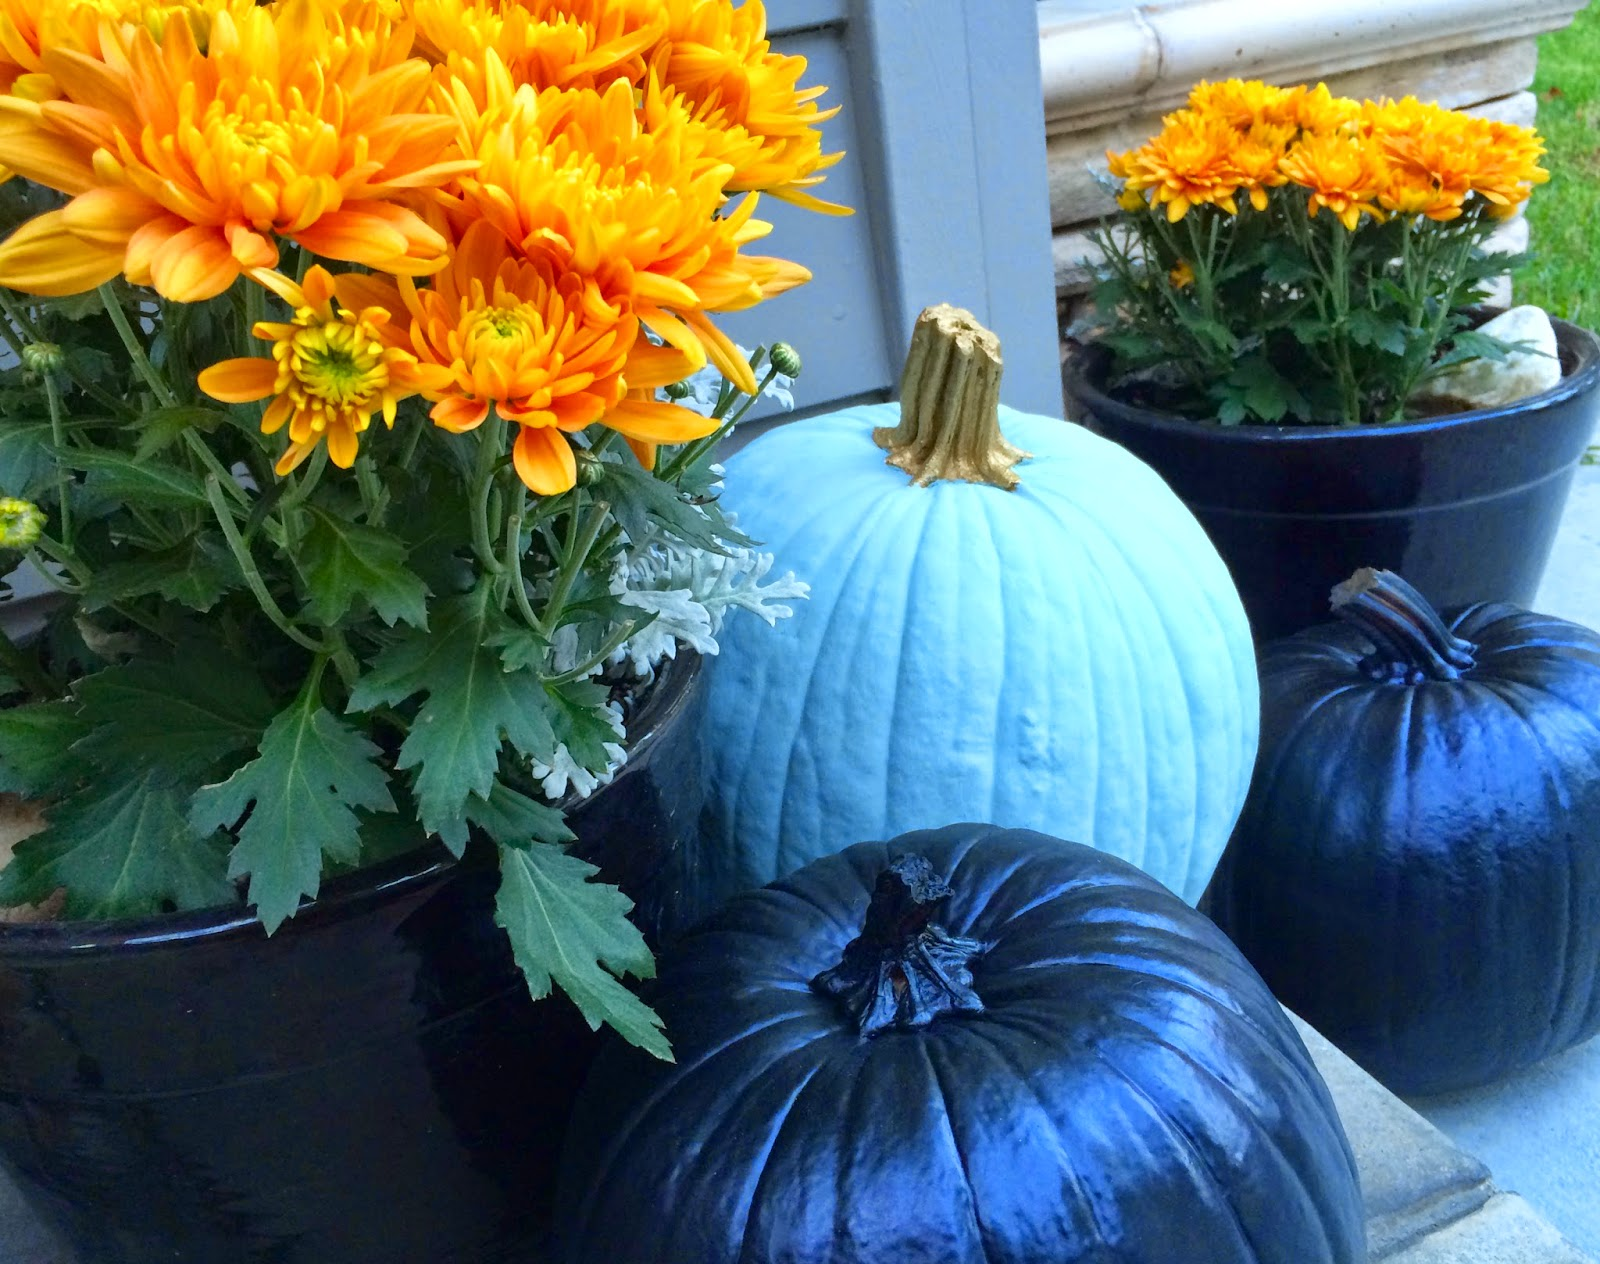 Sherri cassara designs painted pumpkins fall flowers and Flower painted pumpkins